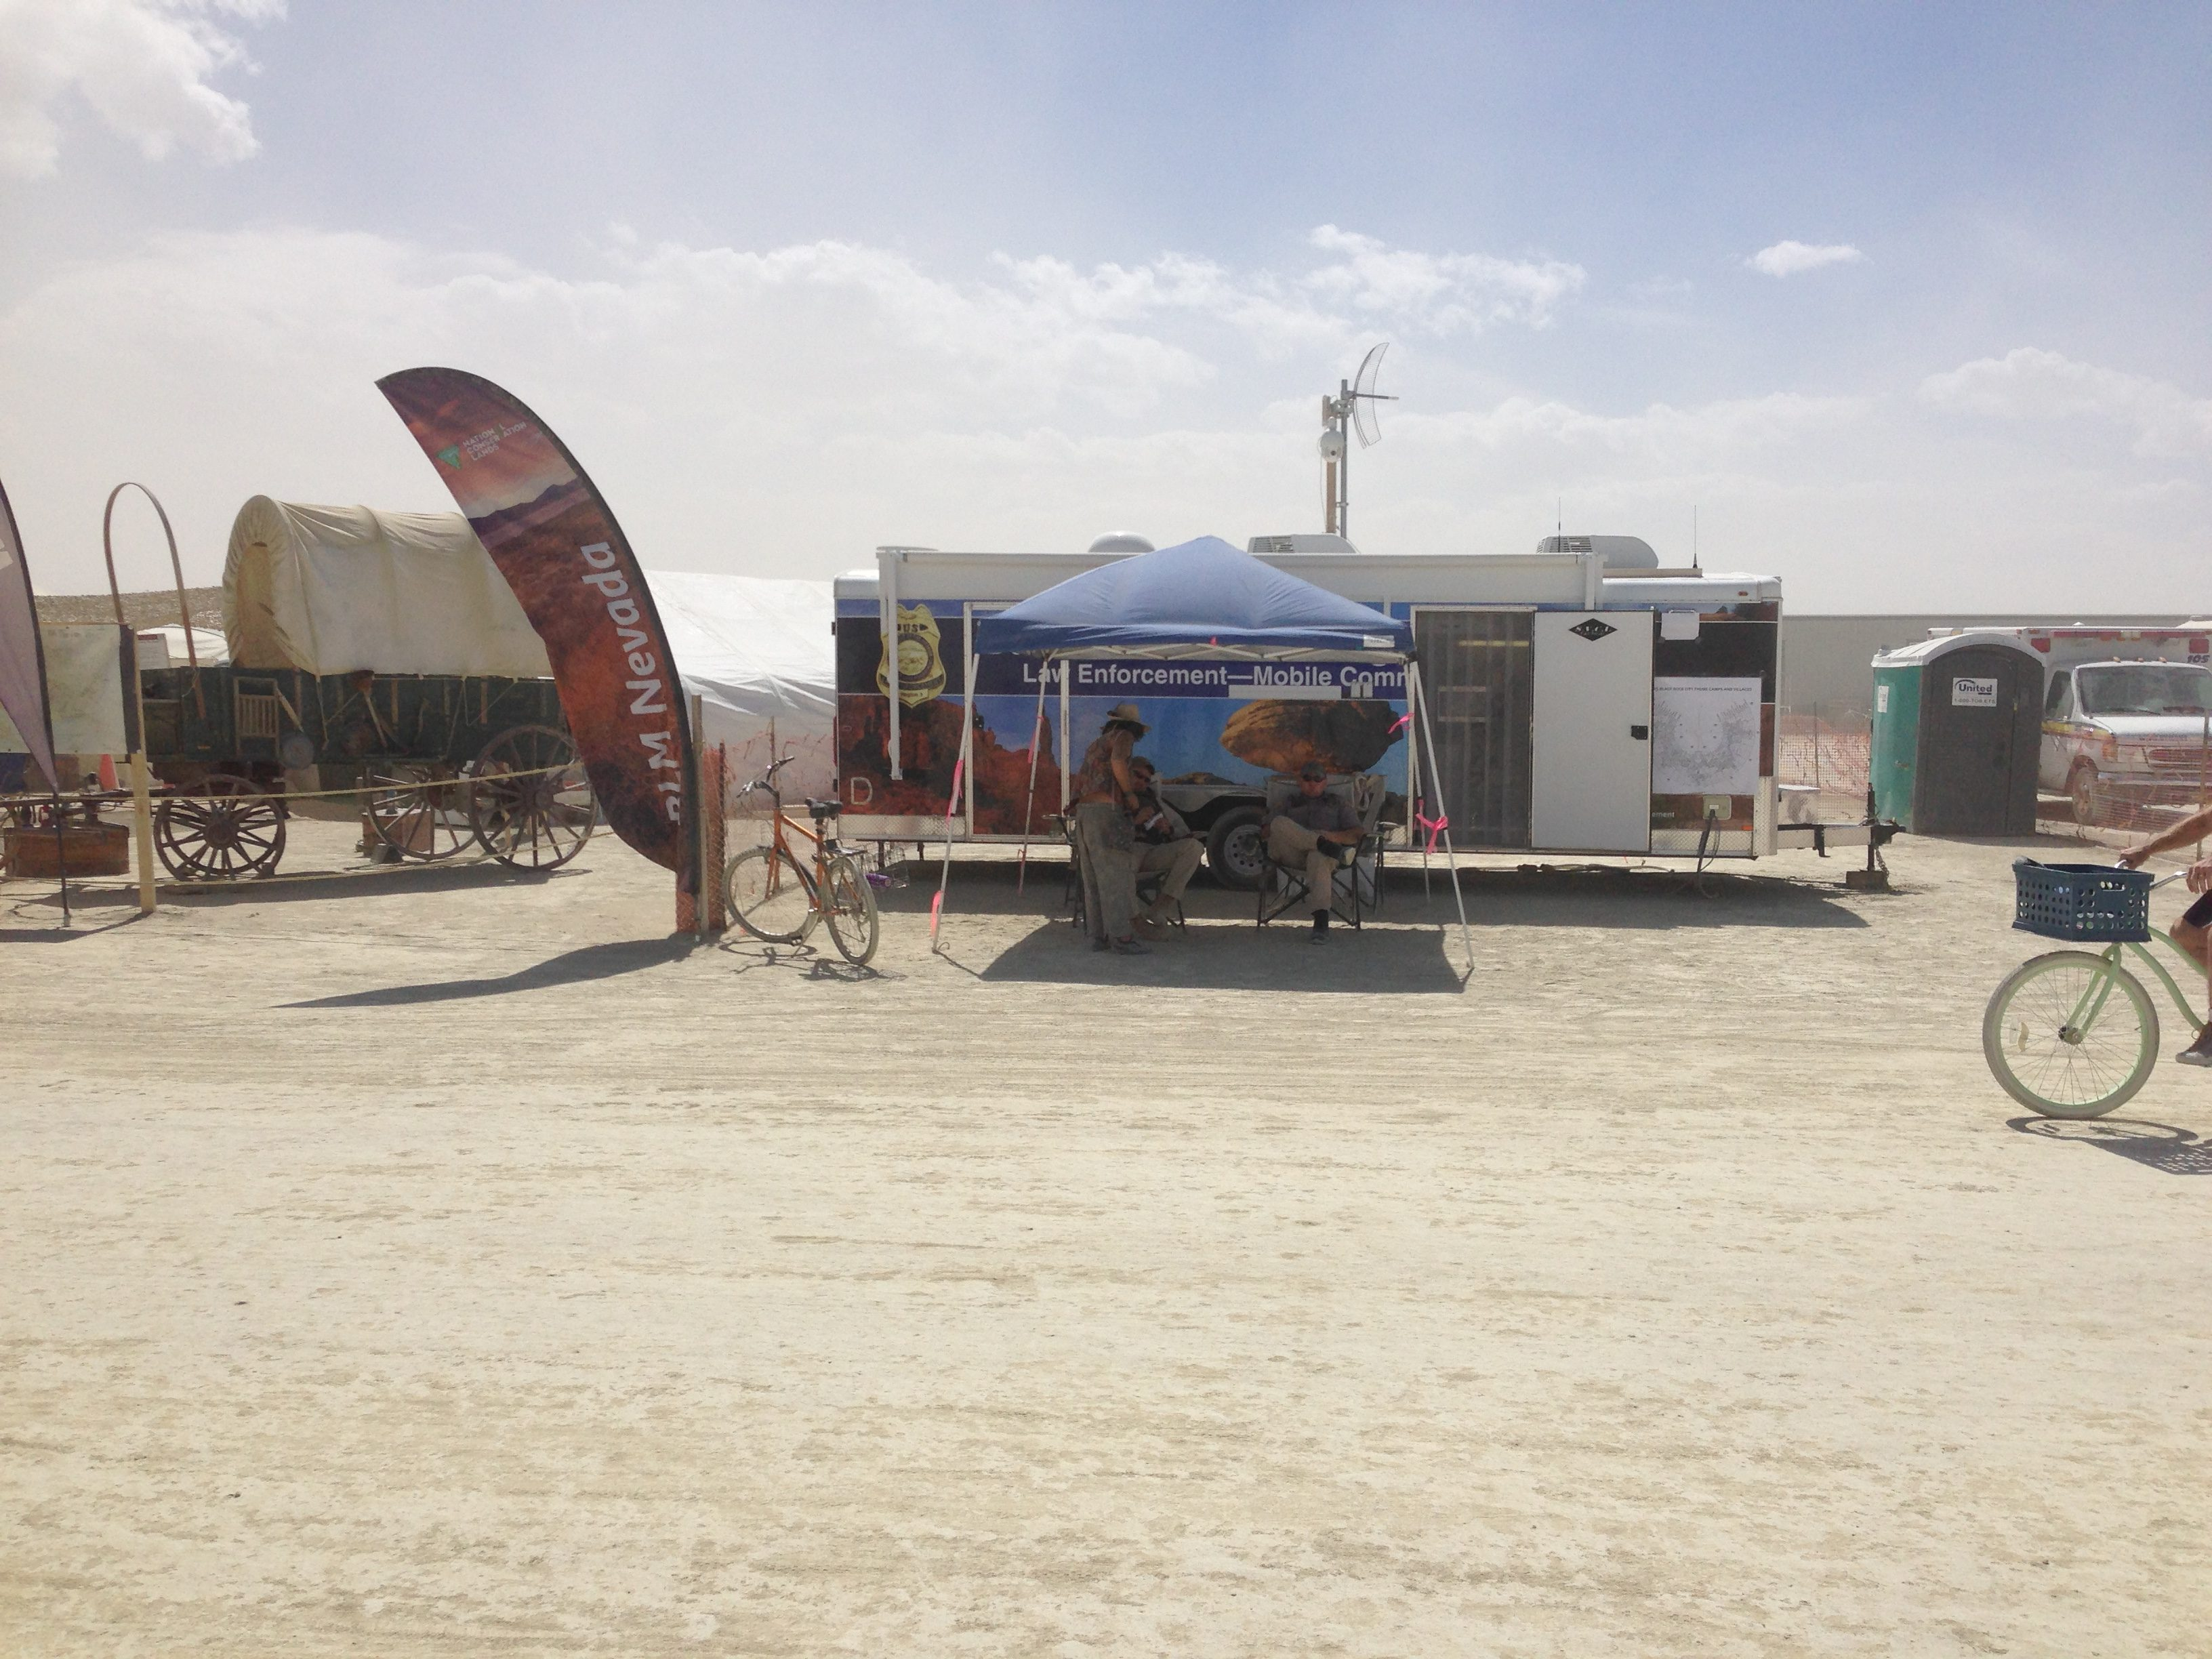 An indication of how safe Burning Man is.